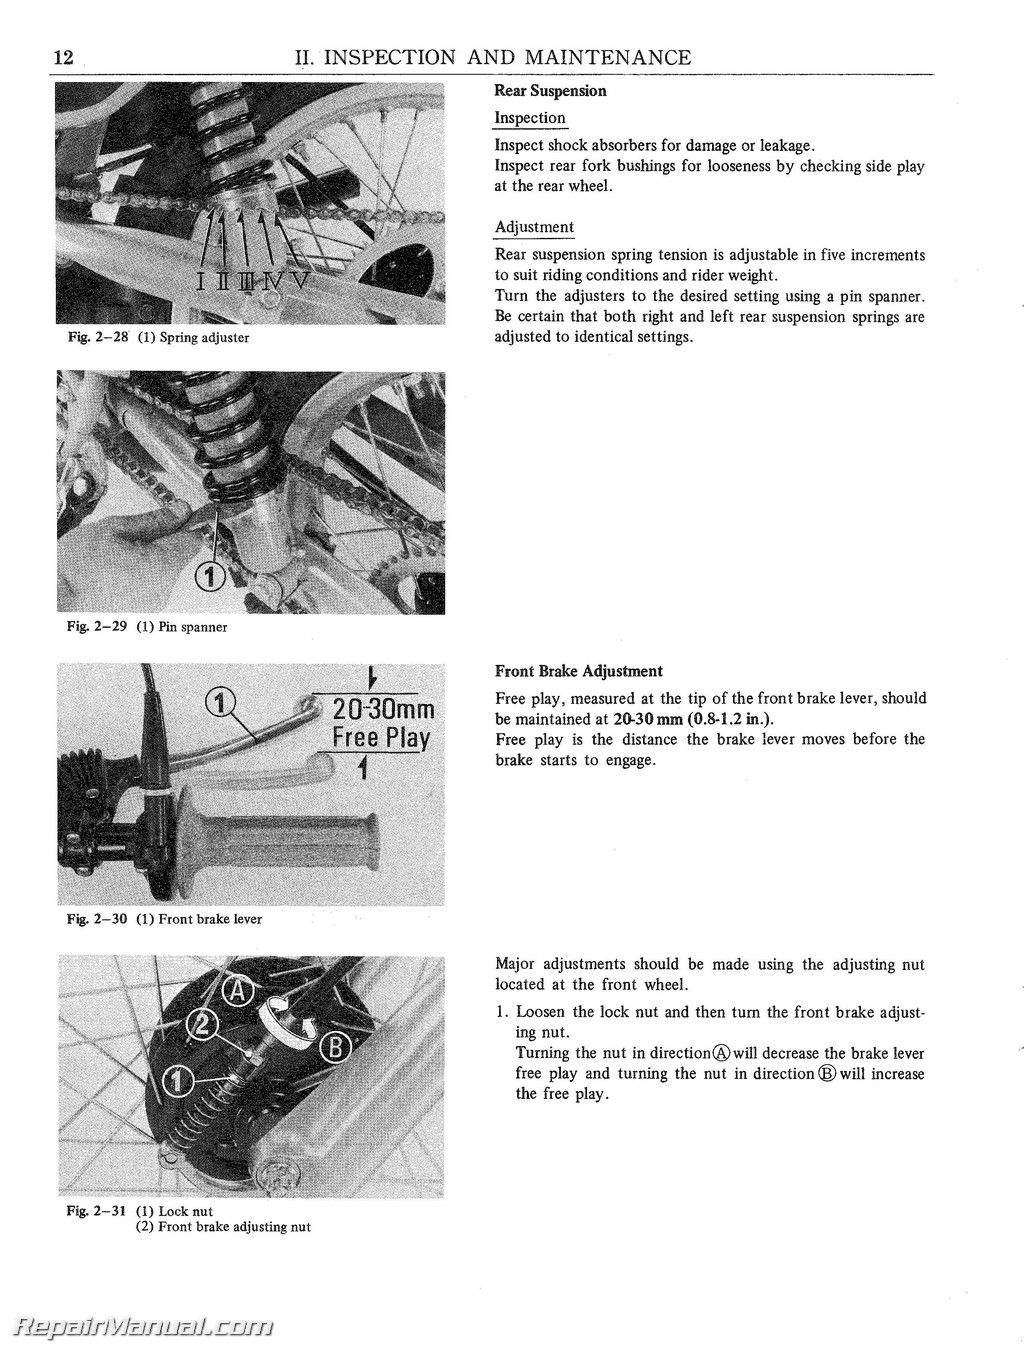 1978 honda xl 125 wiring diagram wirdig scooter wiring diagram moreover 1978 honda xl 125 wiring diagram